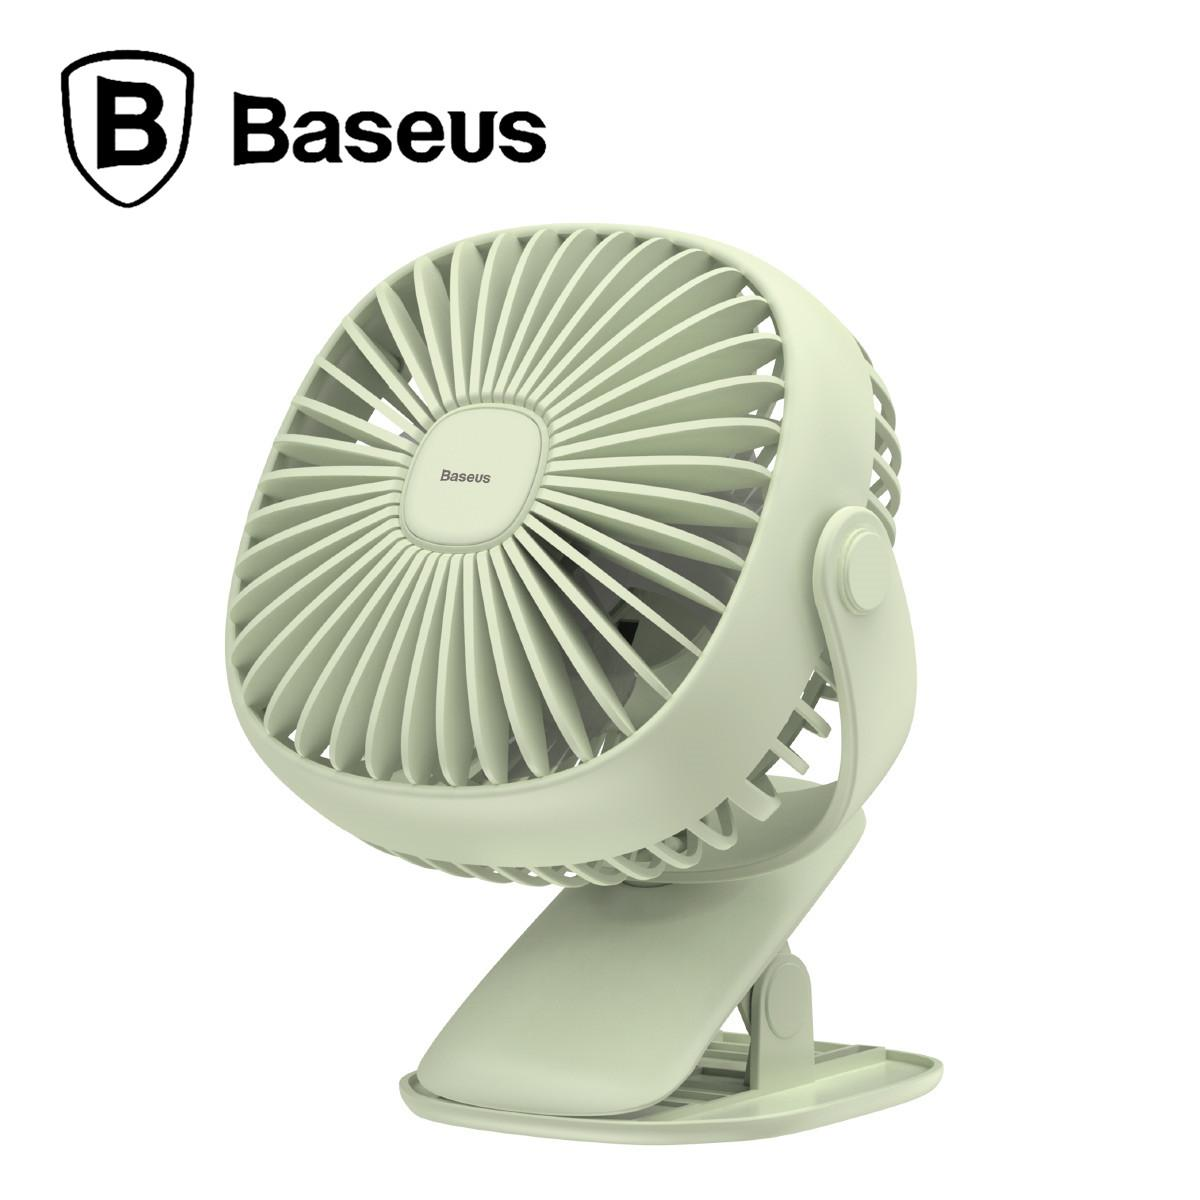 Baseus Box Clamping Fan Mini Usb Rechargeable Air Cooling Fan Clip Desk Fan By Gxm Gadgets.